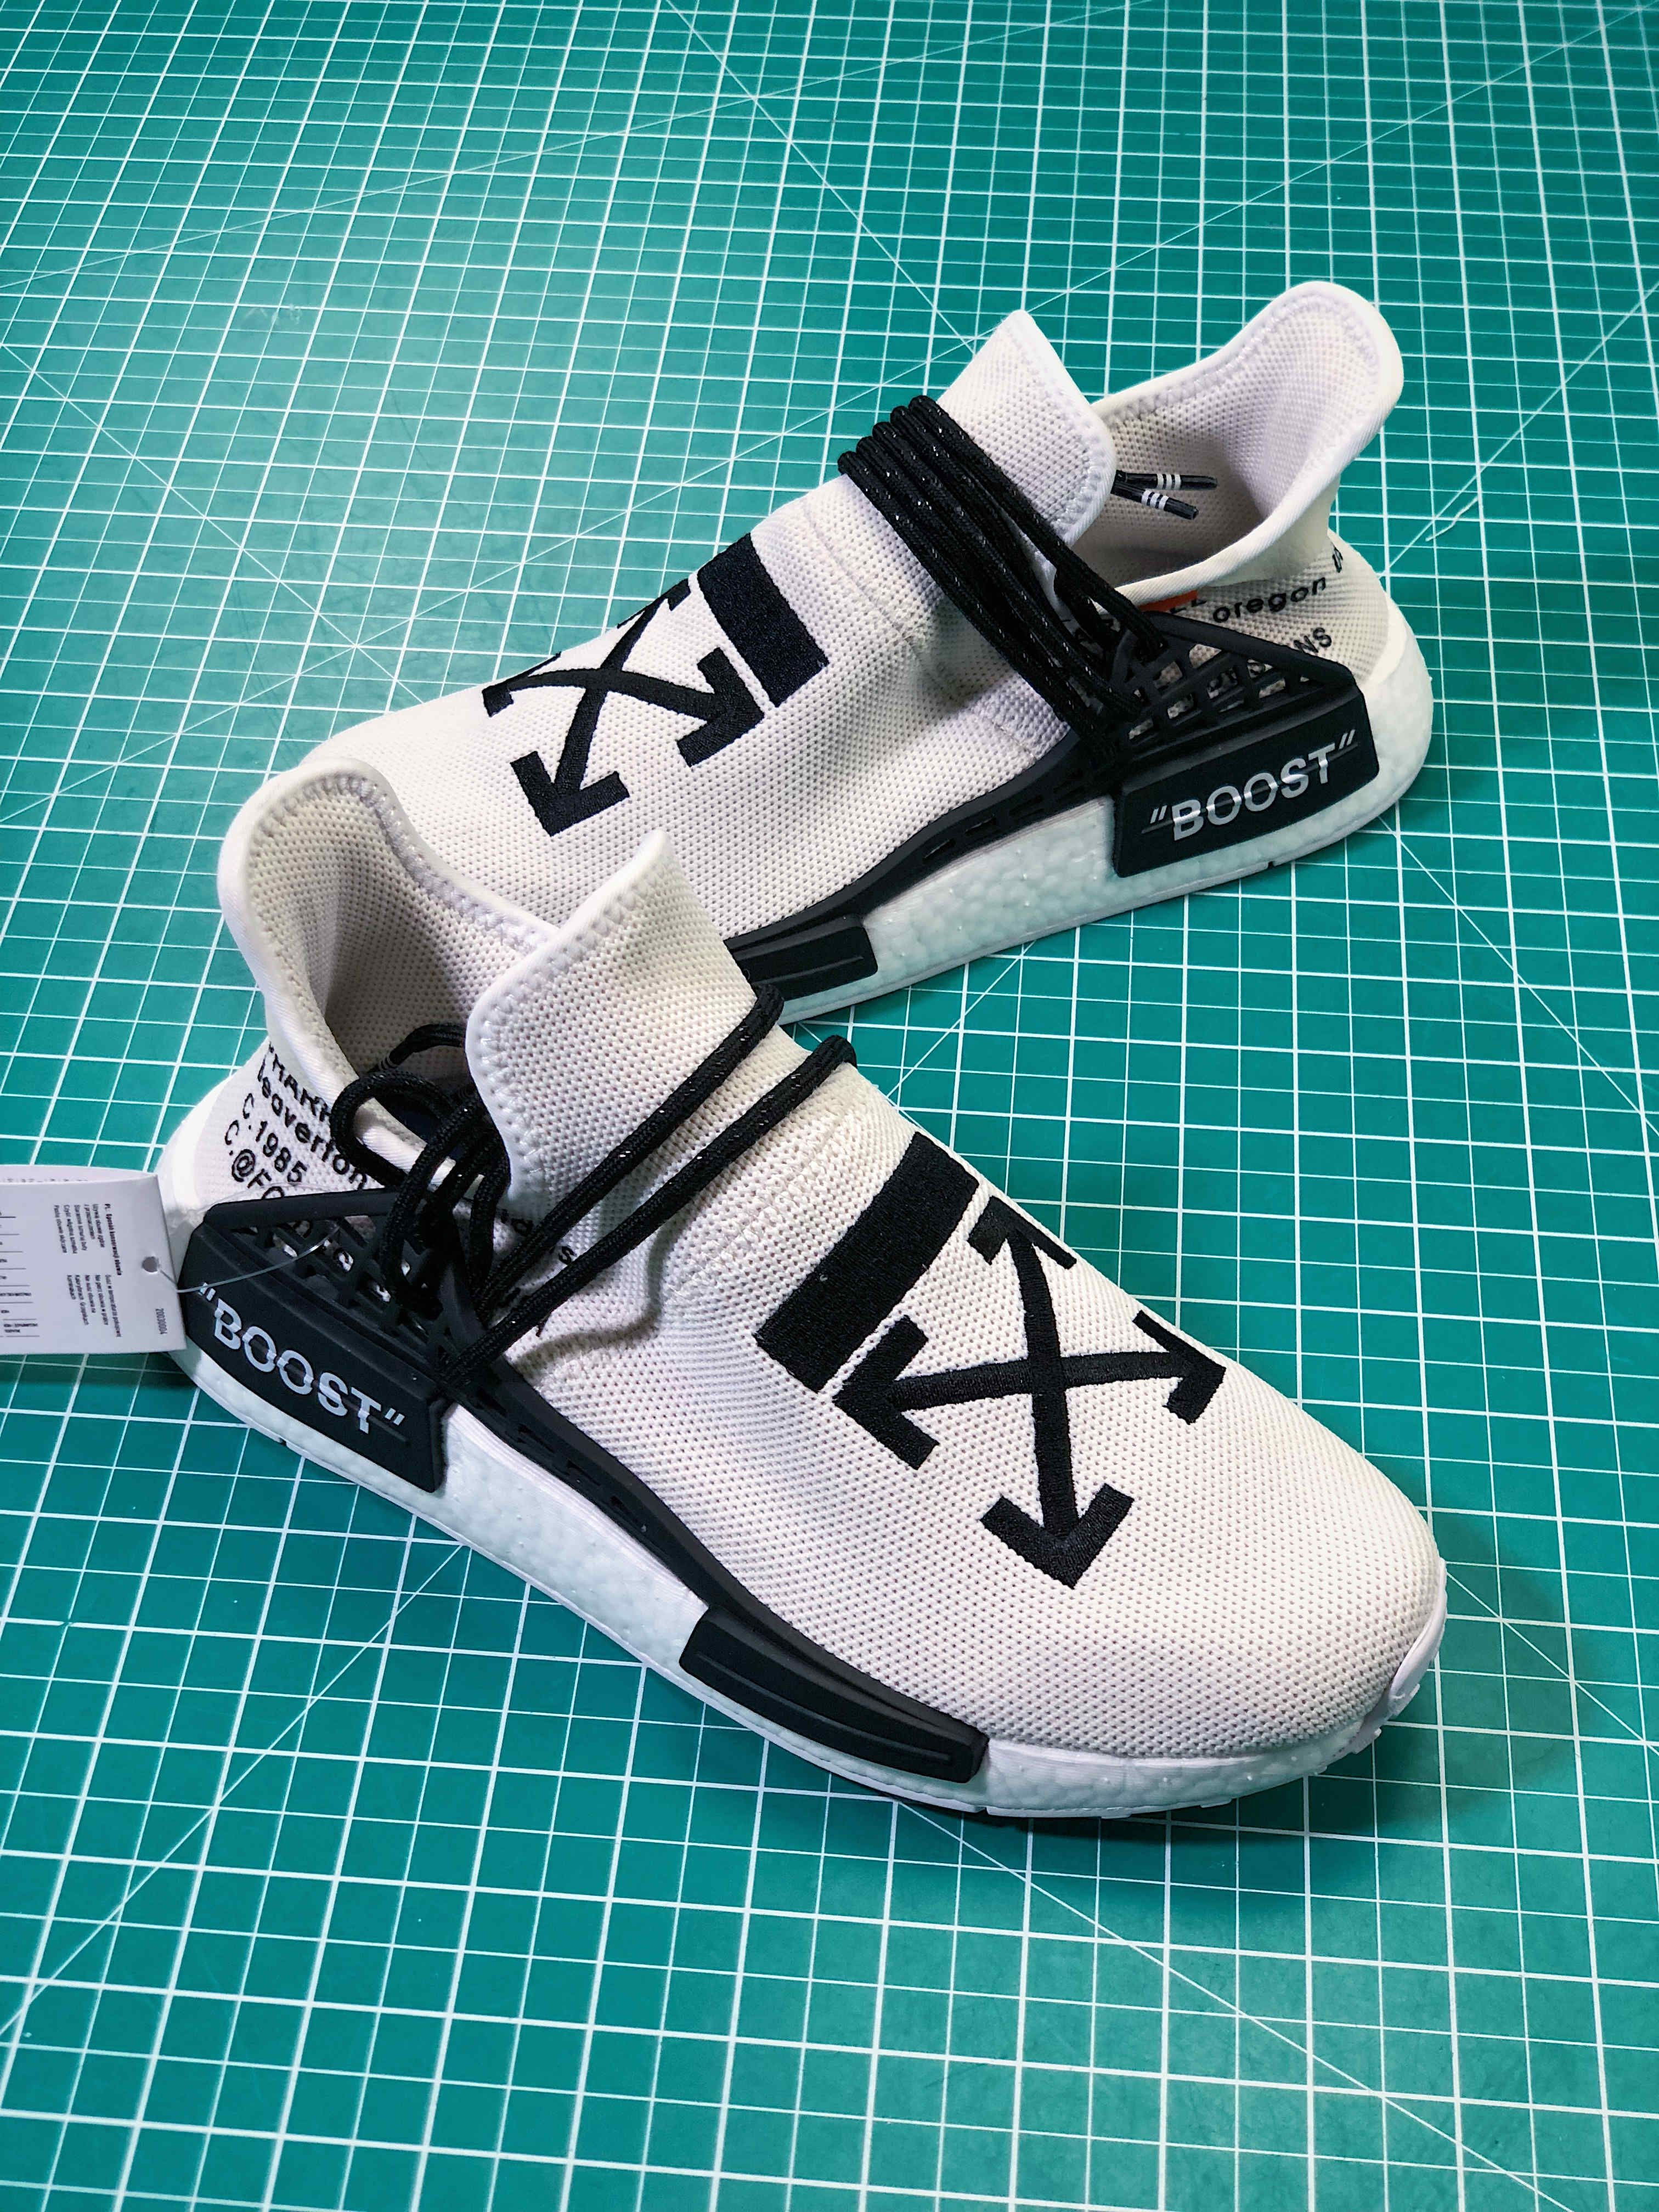 141eee5c5 Custom Off-White x Adidas NMD HU Pharrell Human Race White Black ...